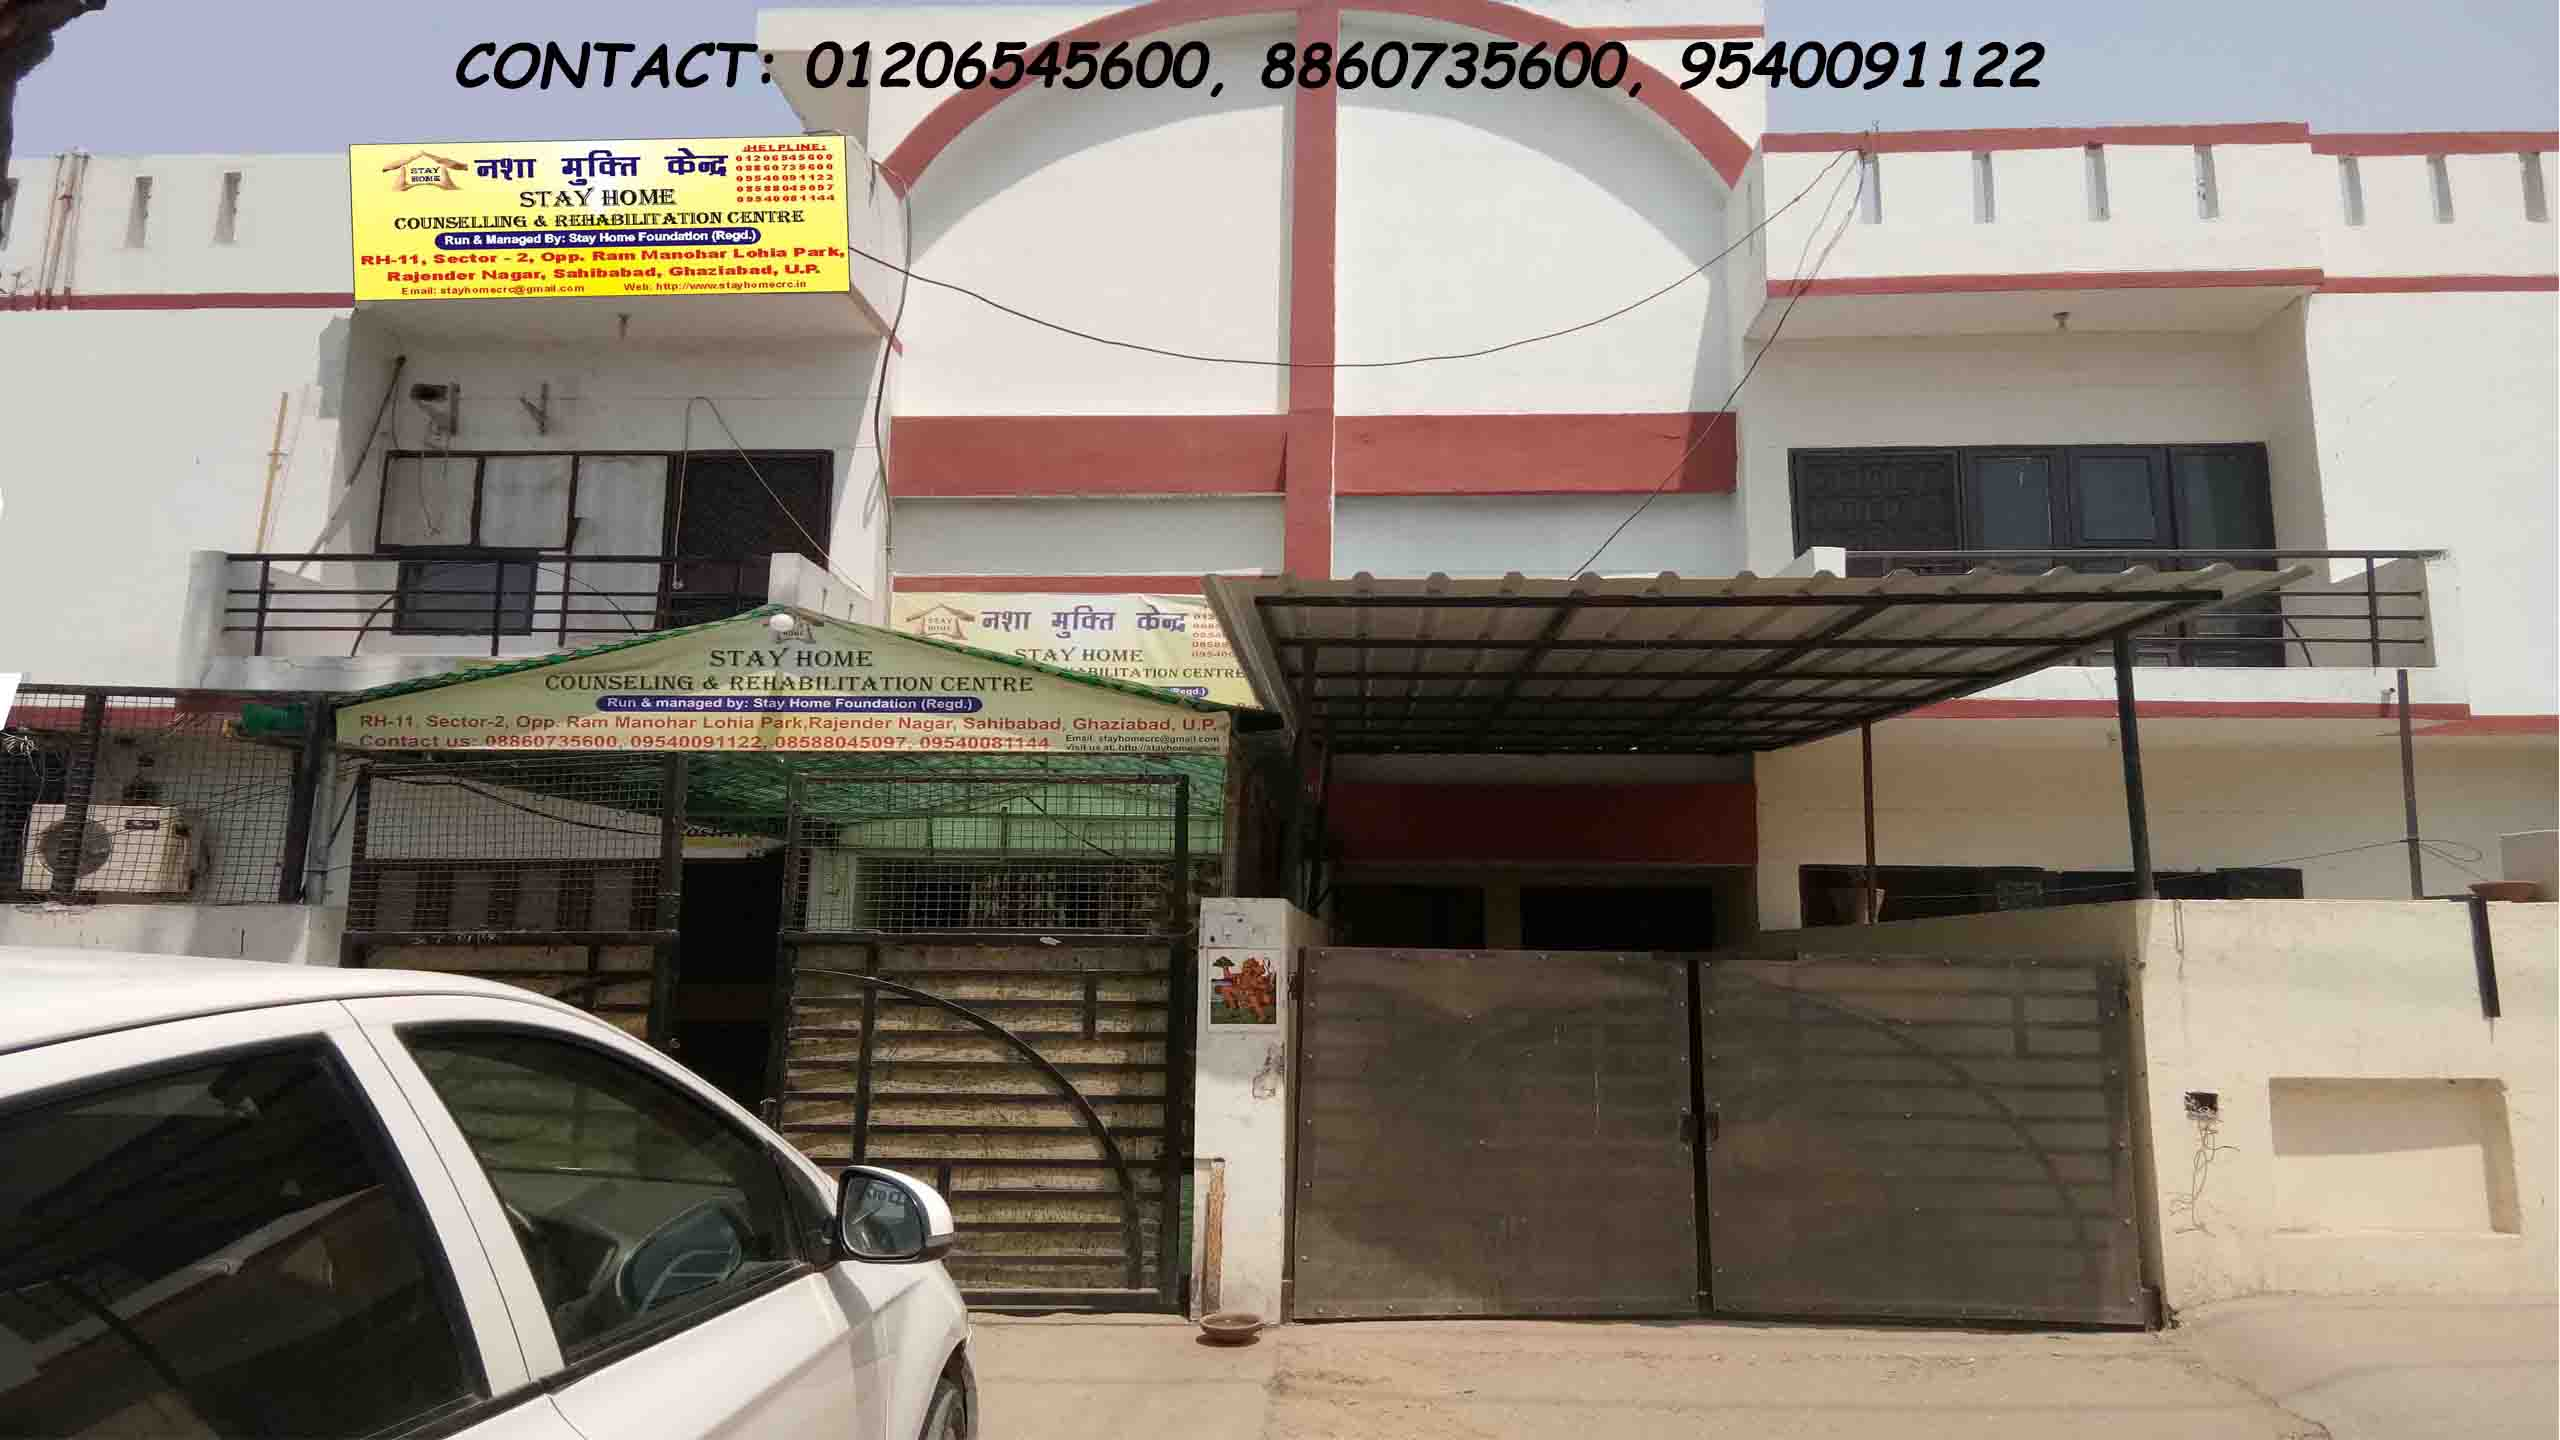 Nasha Mukti Kendra - Stay HomeHealth and BeautyAlternative TreatmentsGhaziabadMohan Nagar